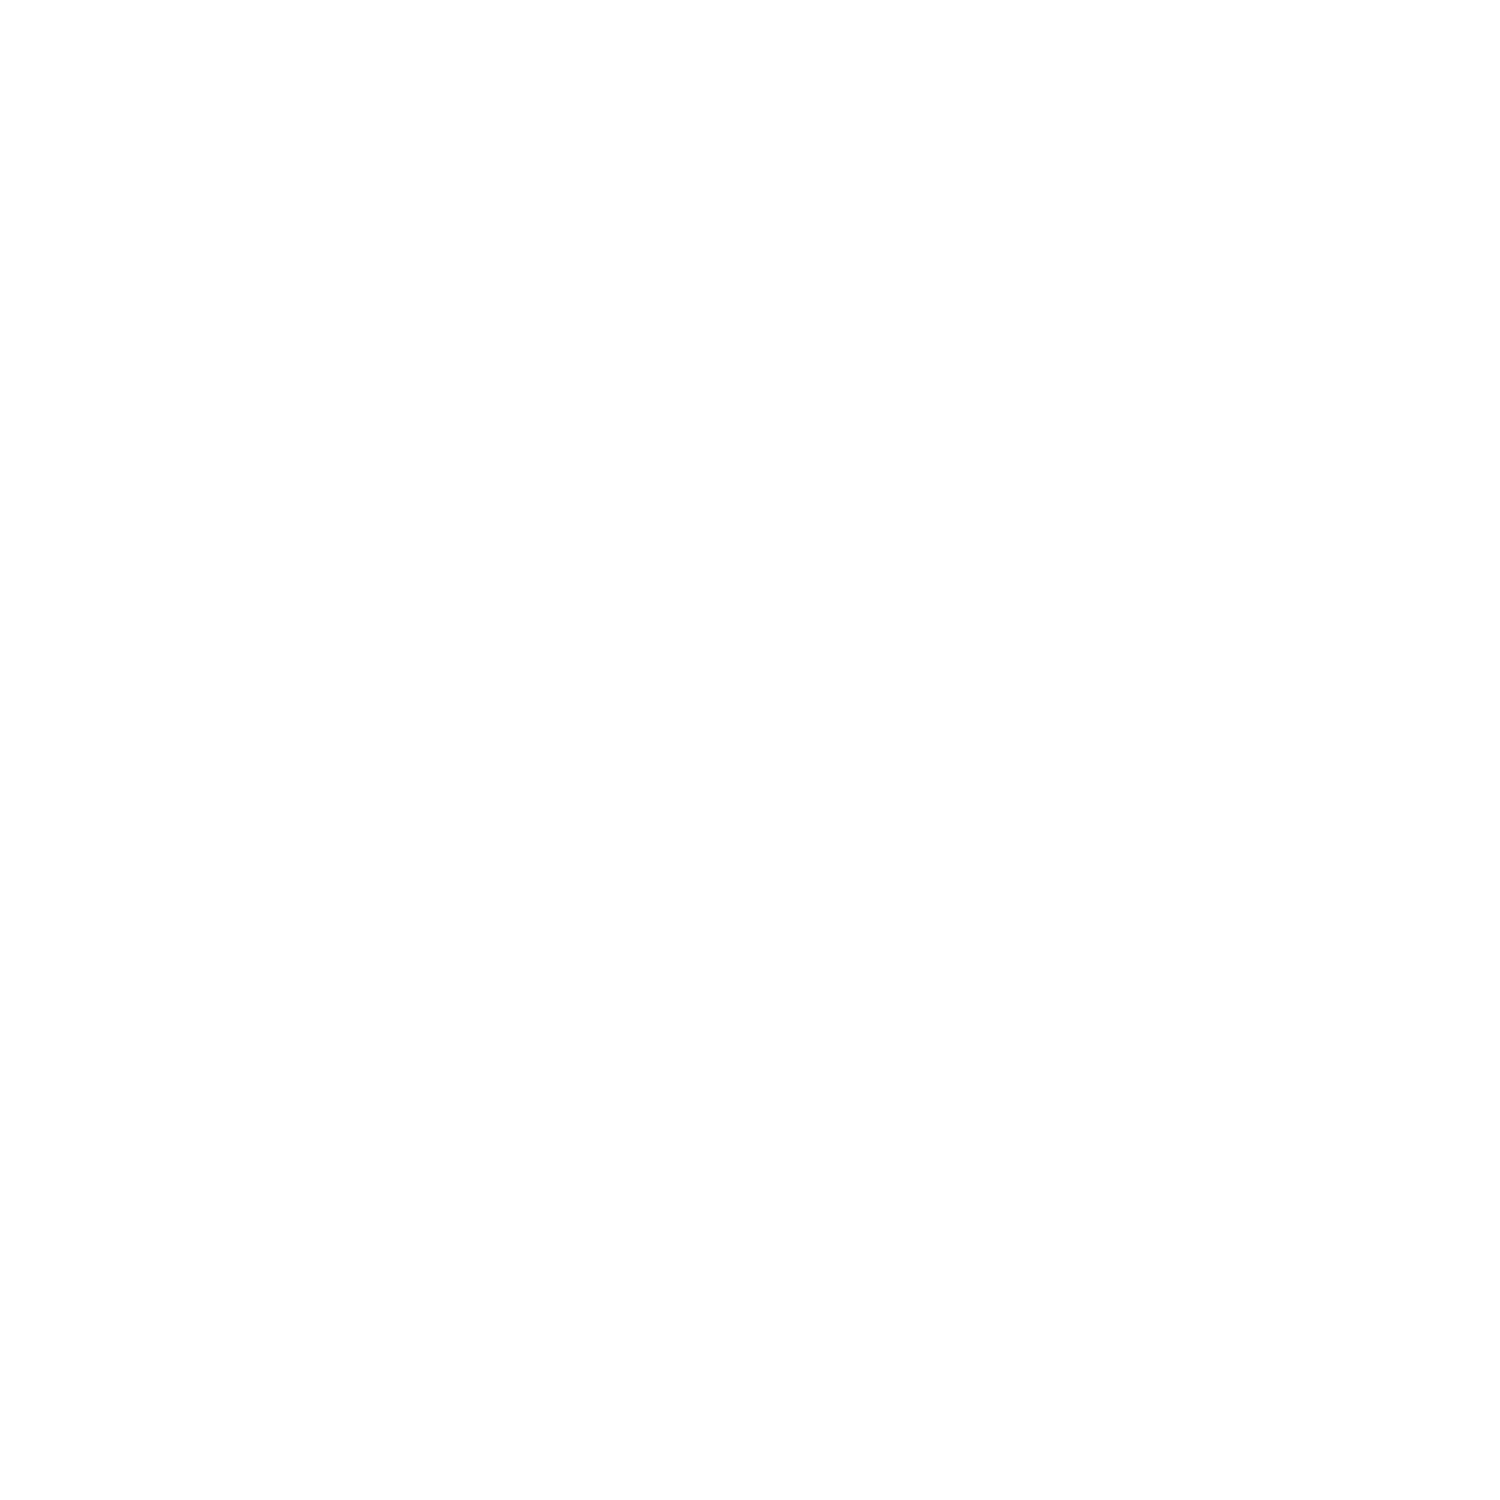 Cambridge Australia Scholarships